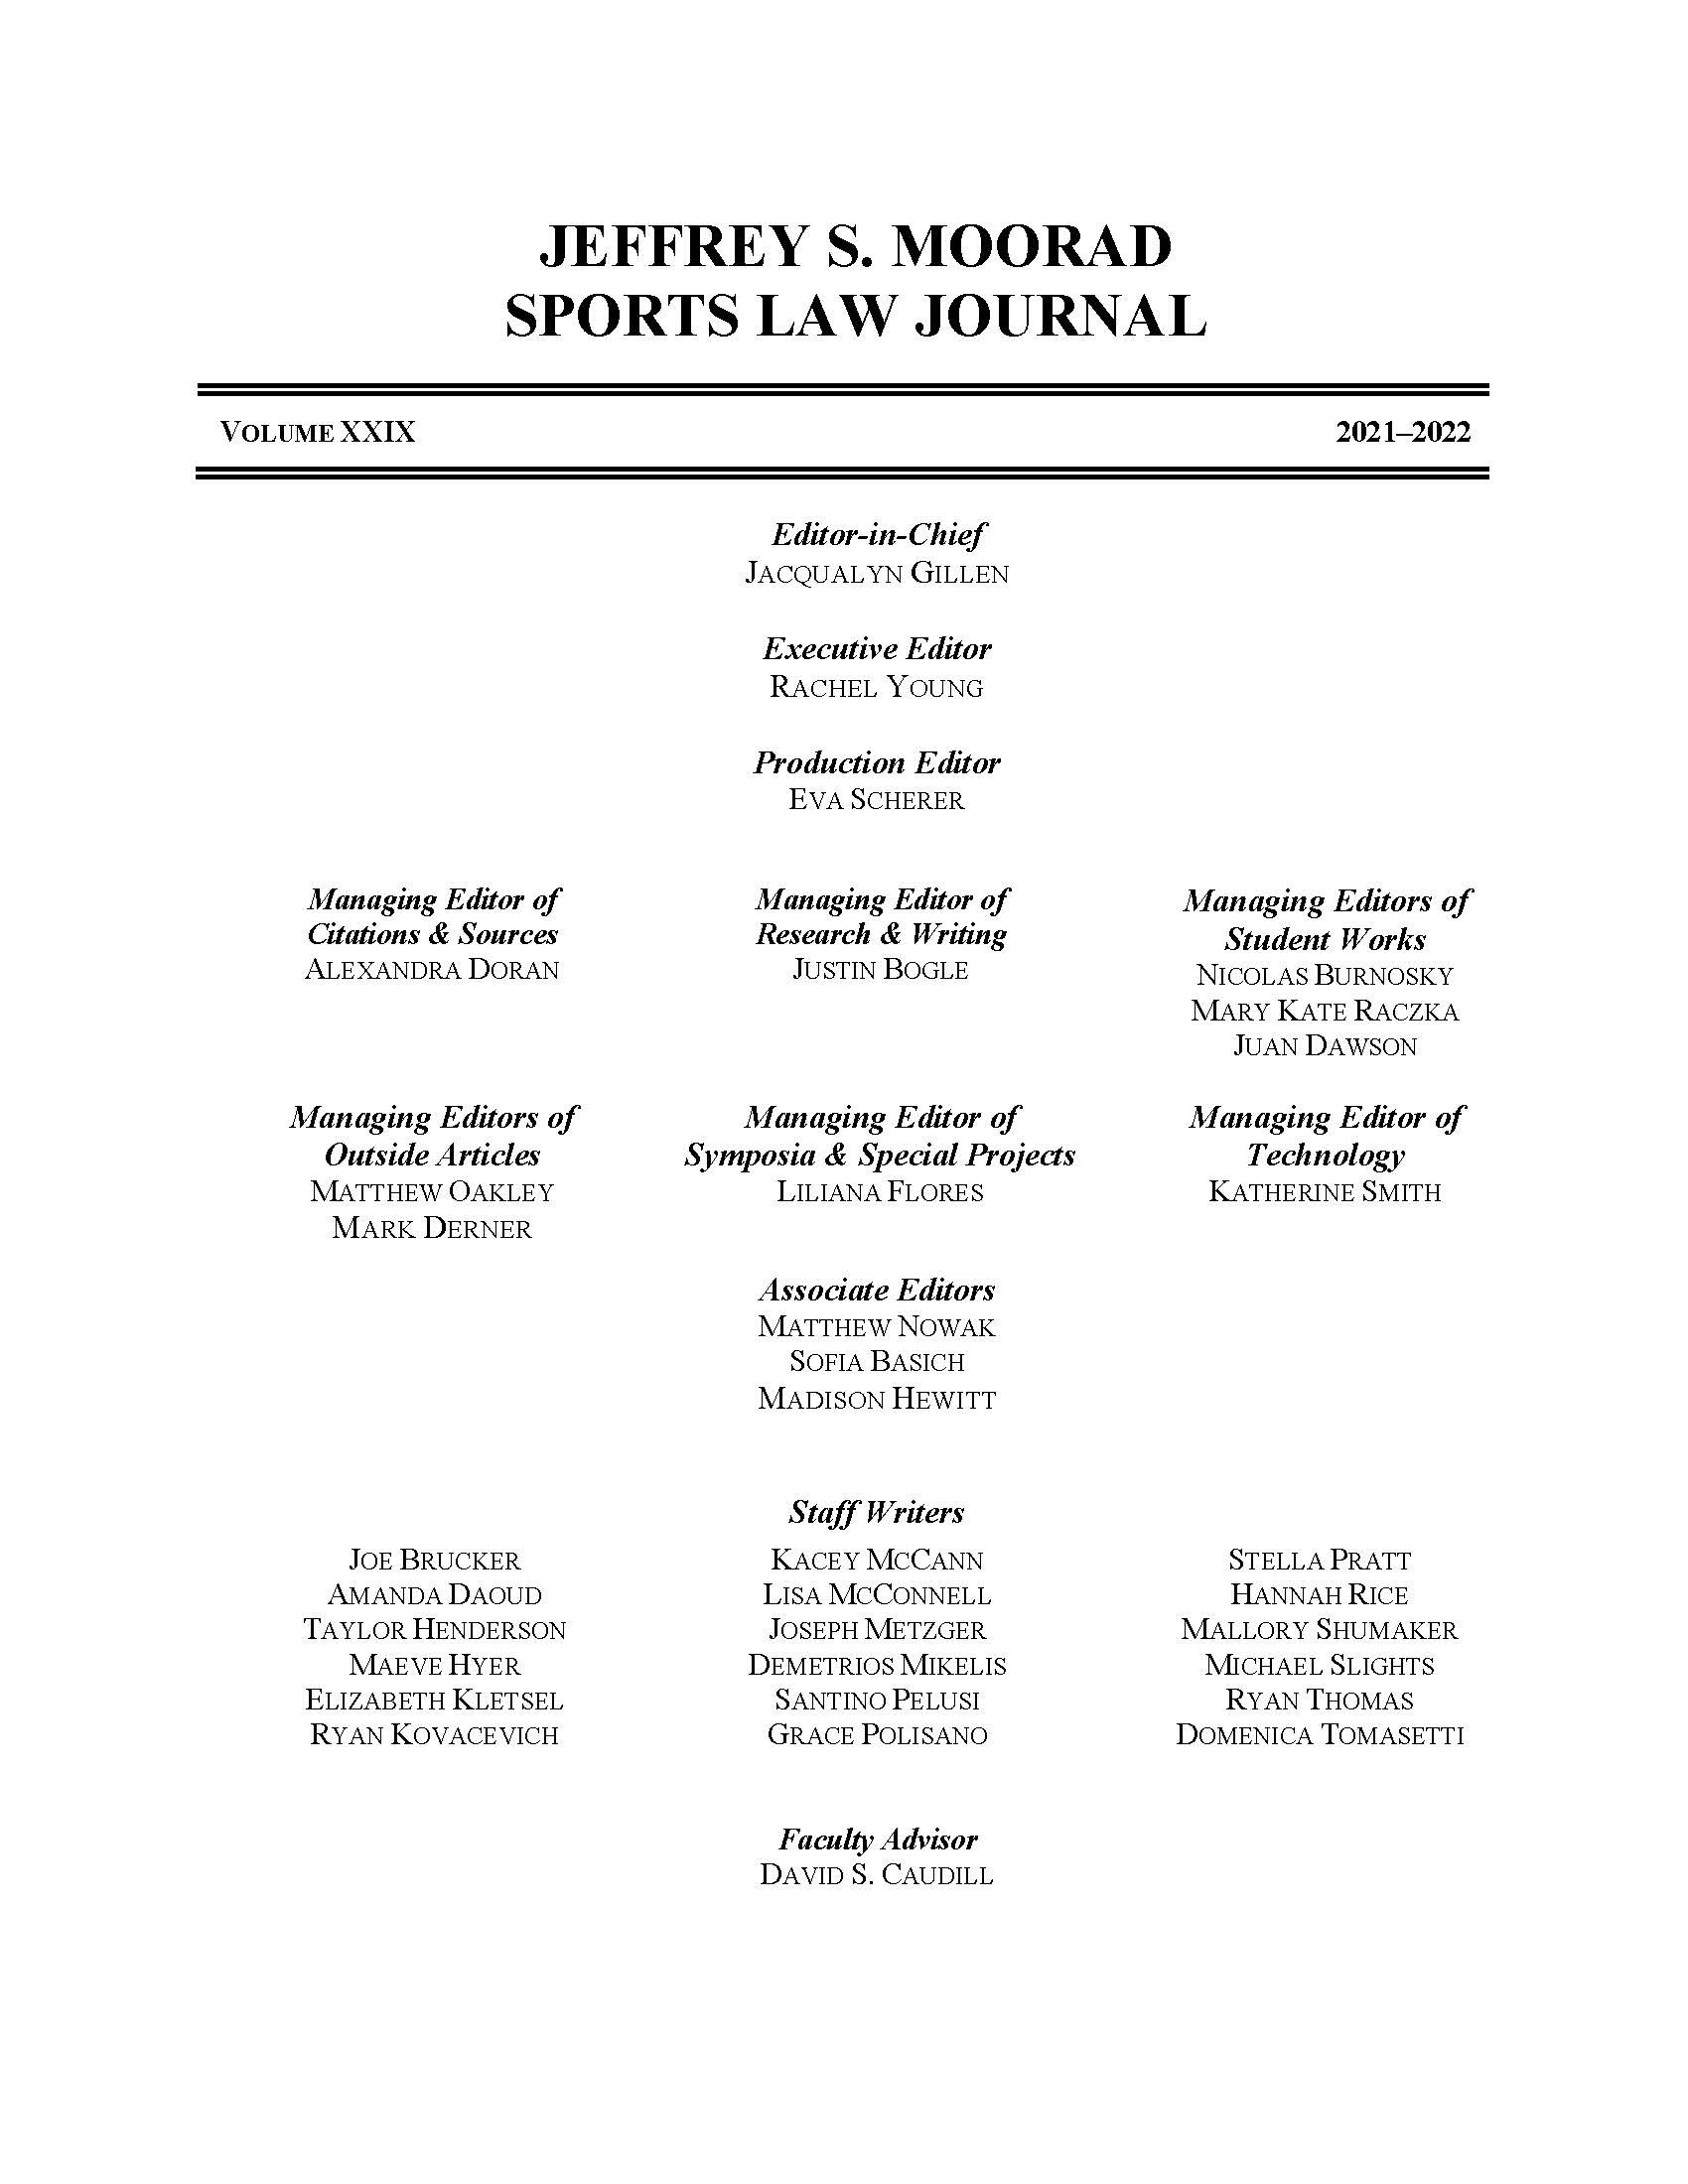 Moorad Sports Law Journal - Volume 27 Masthead